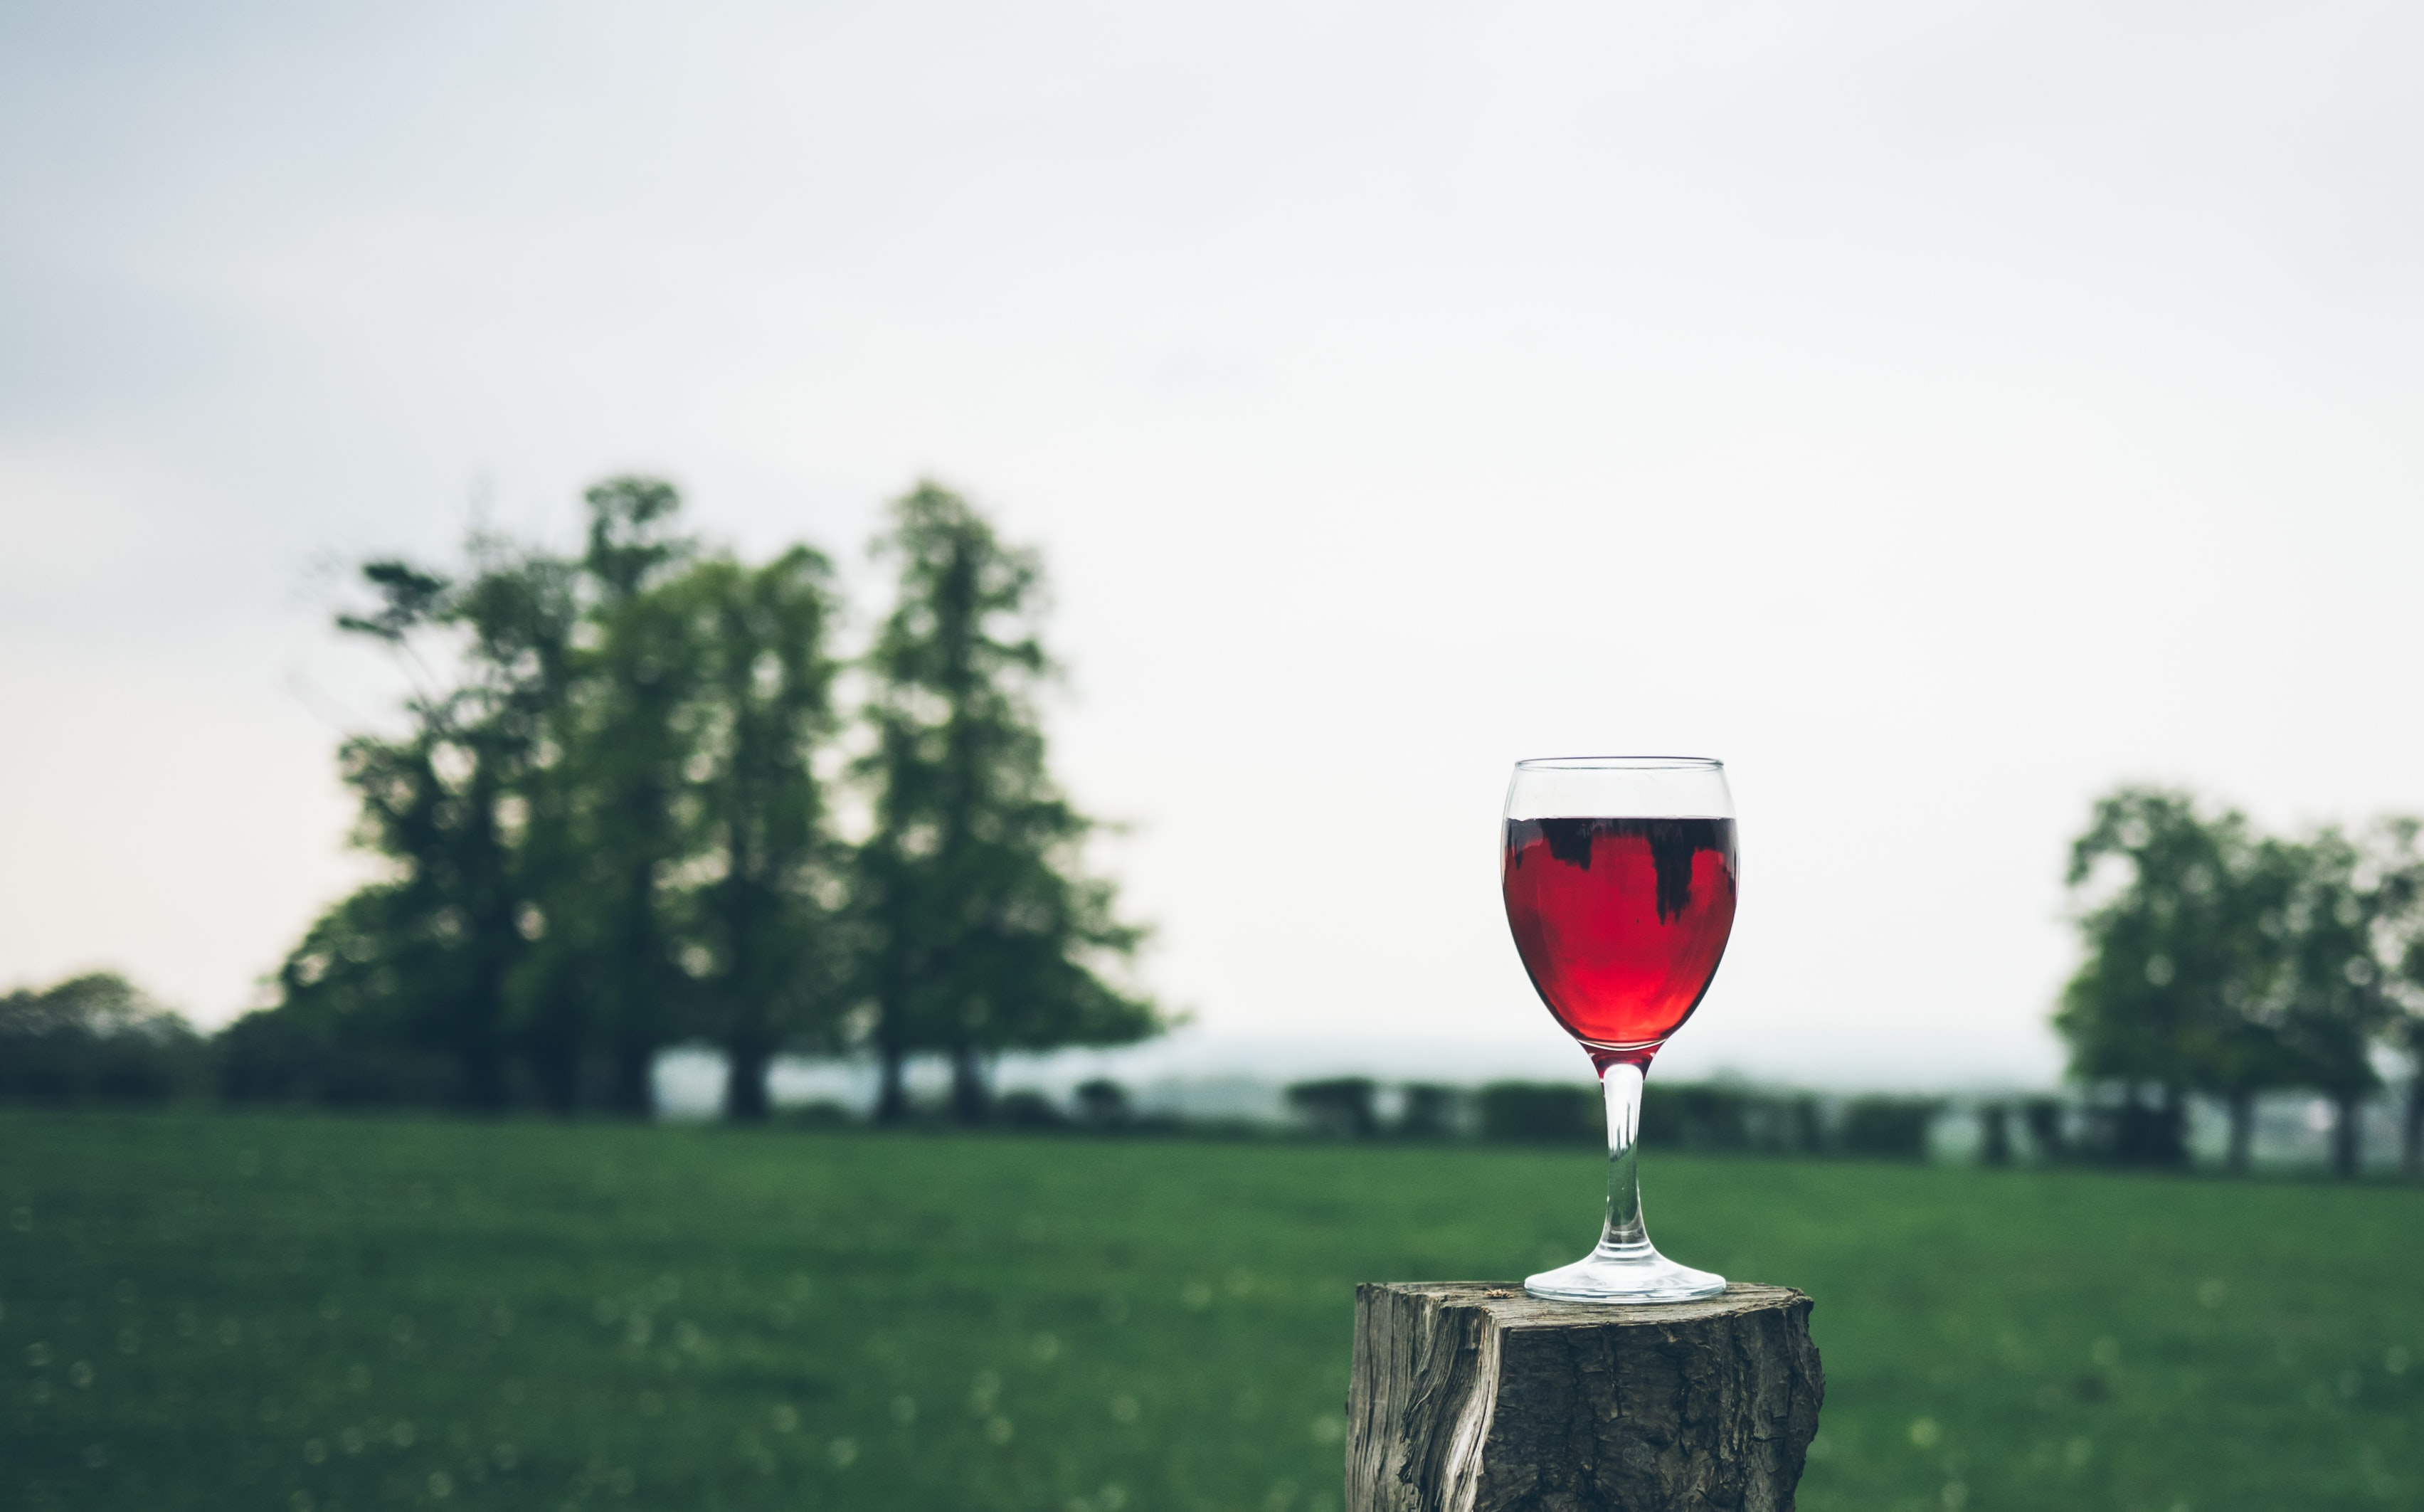 A glass of red wine on a small tree stump with a green field in the background